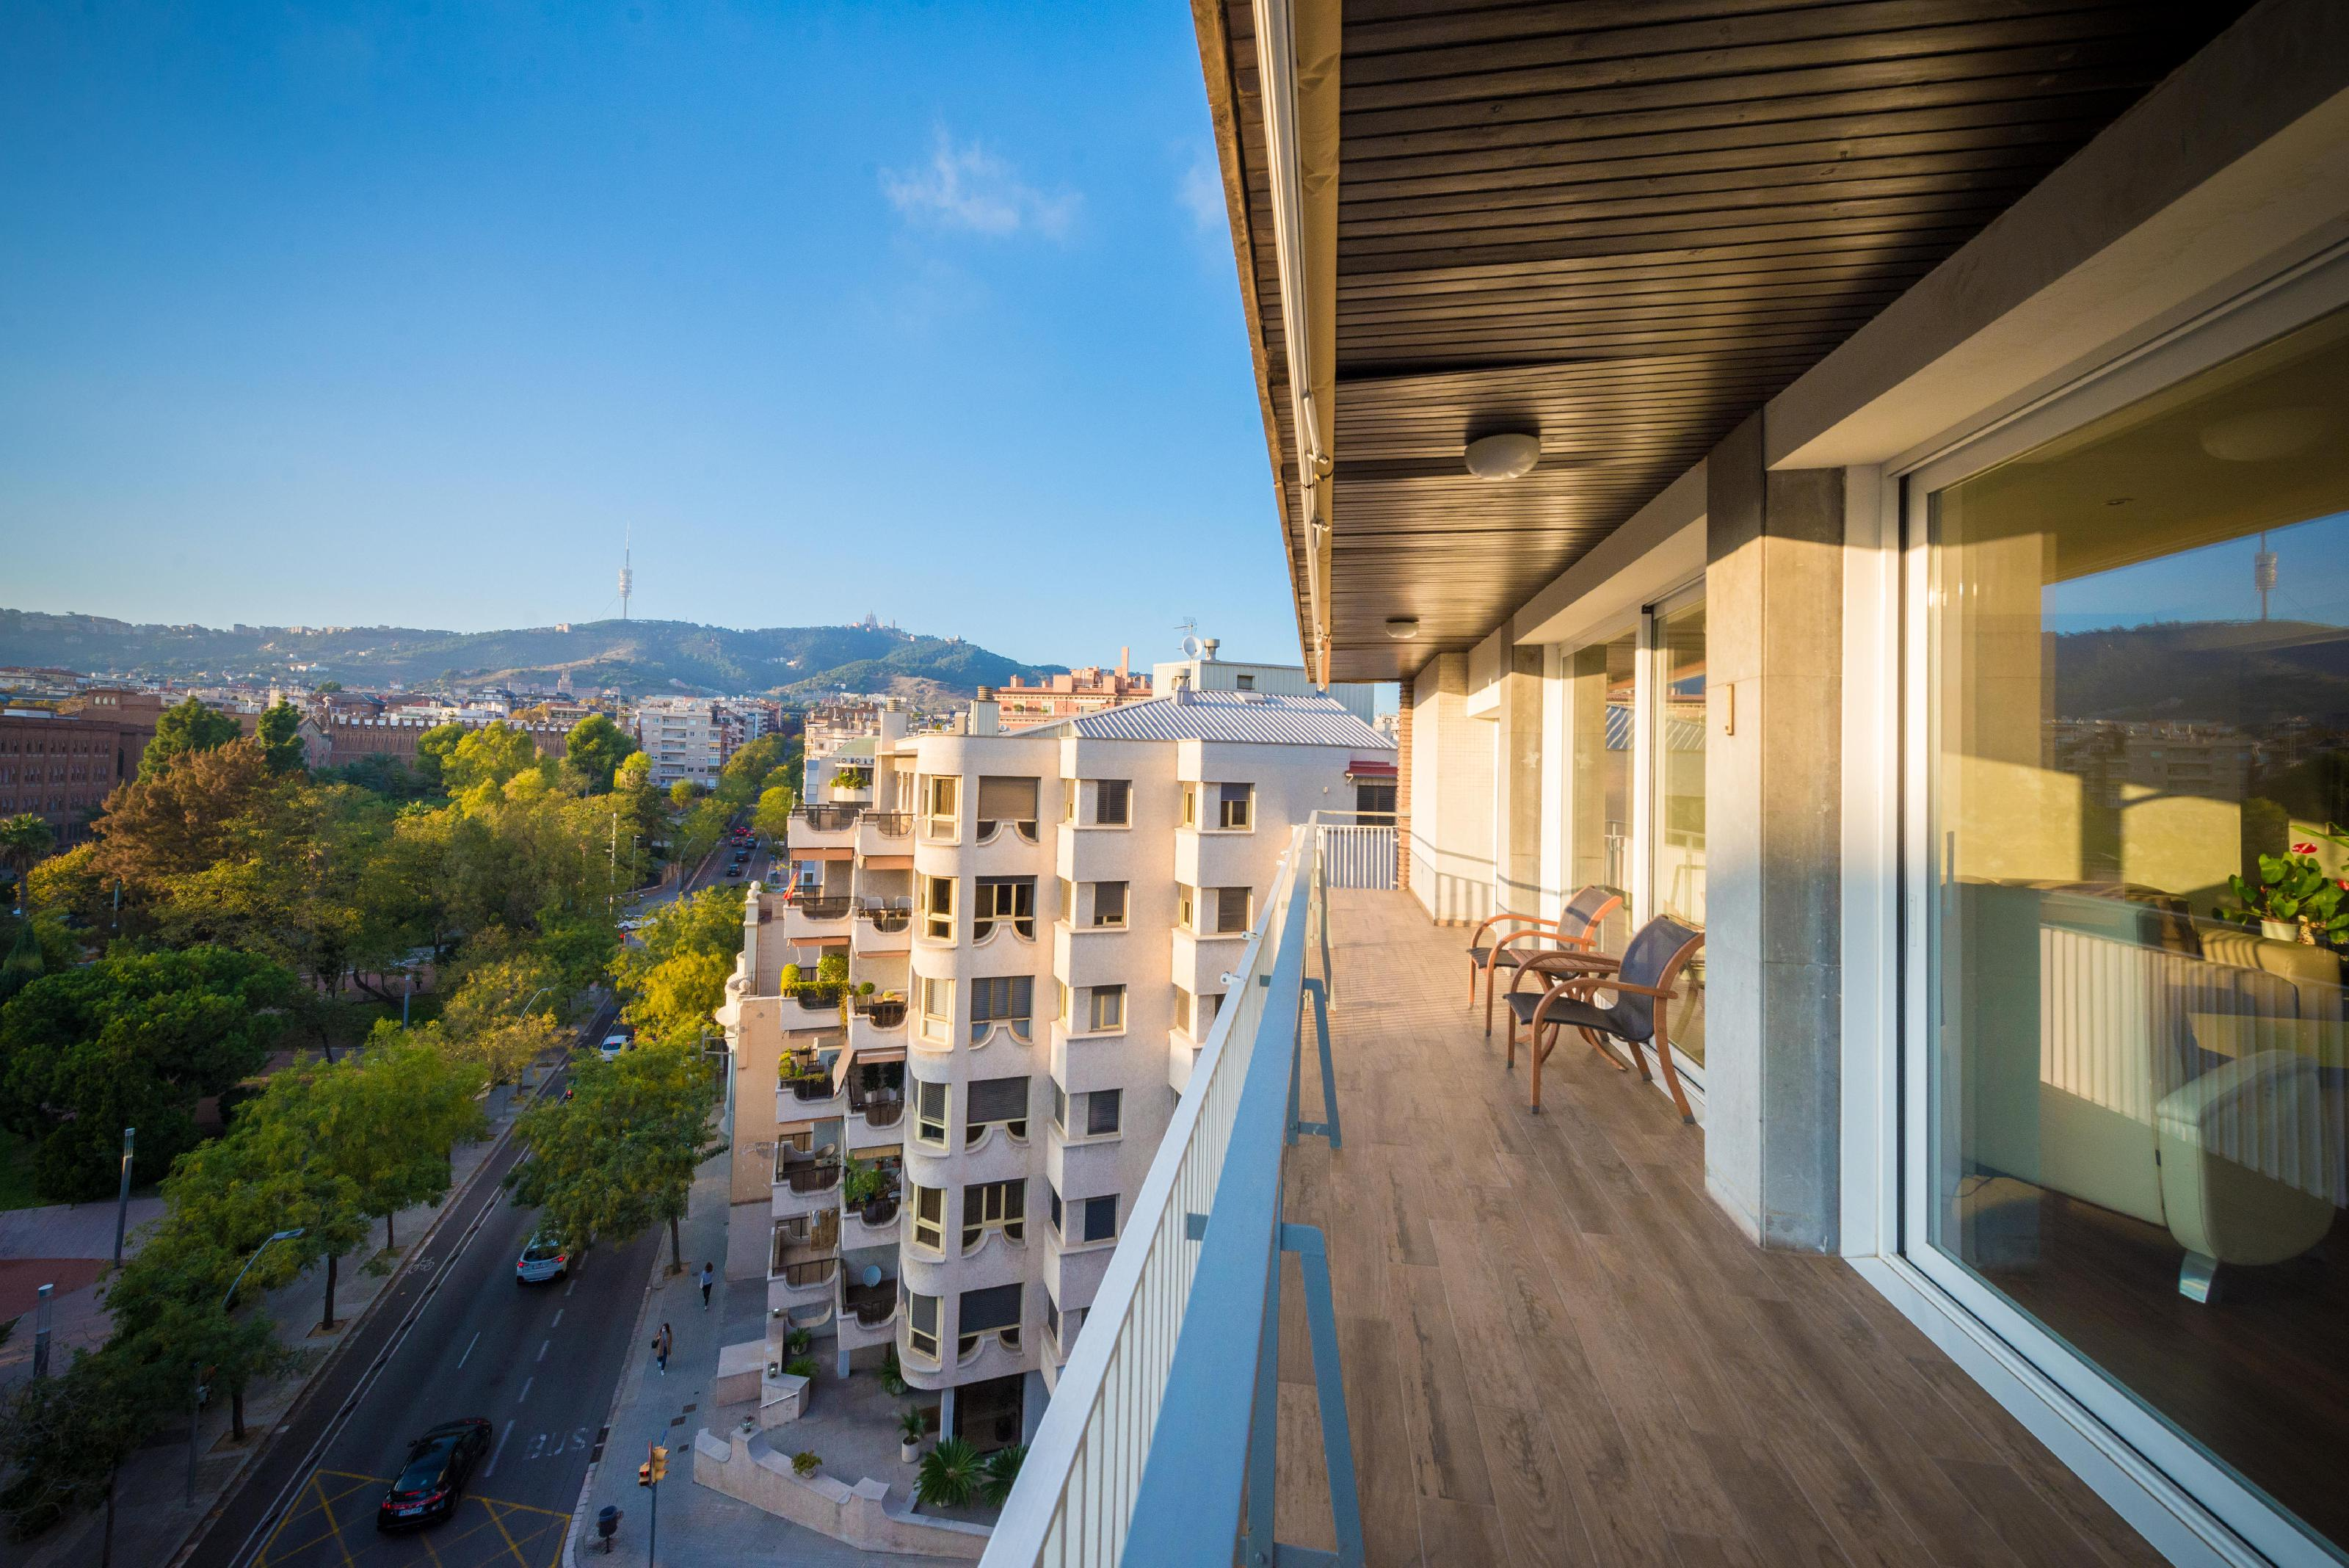 243891 Penthouse for sale in Sarrià-Sant Gervasi, Sant Gervasi-Galvany 9